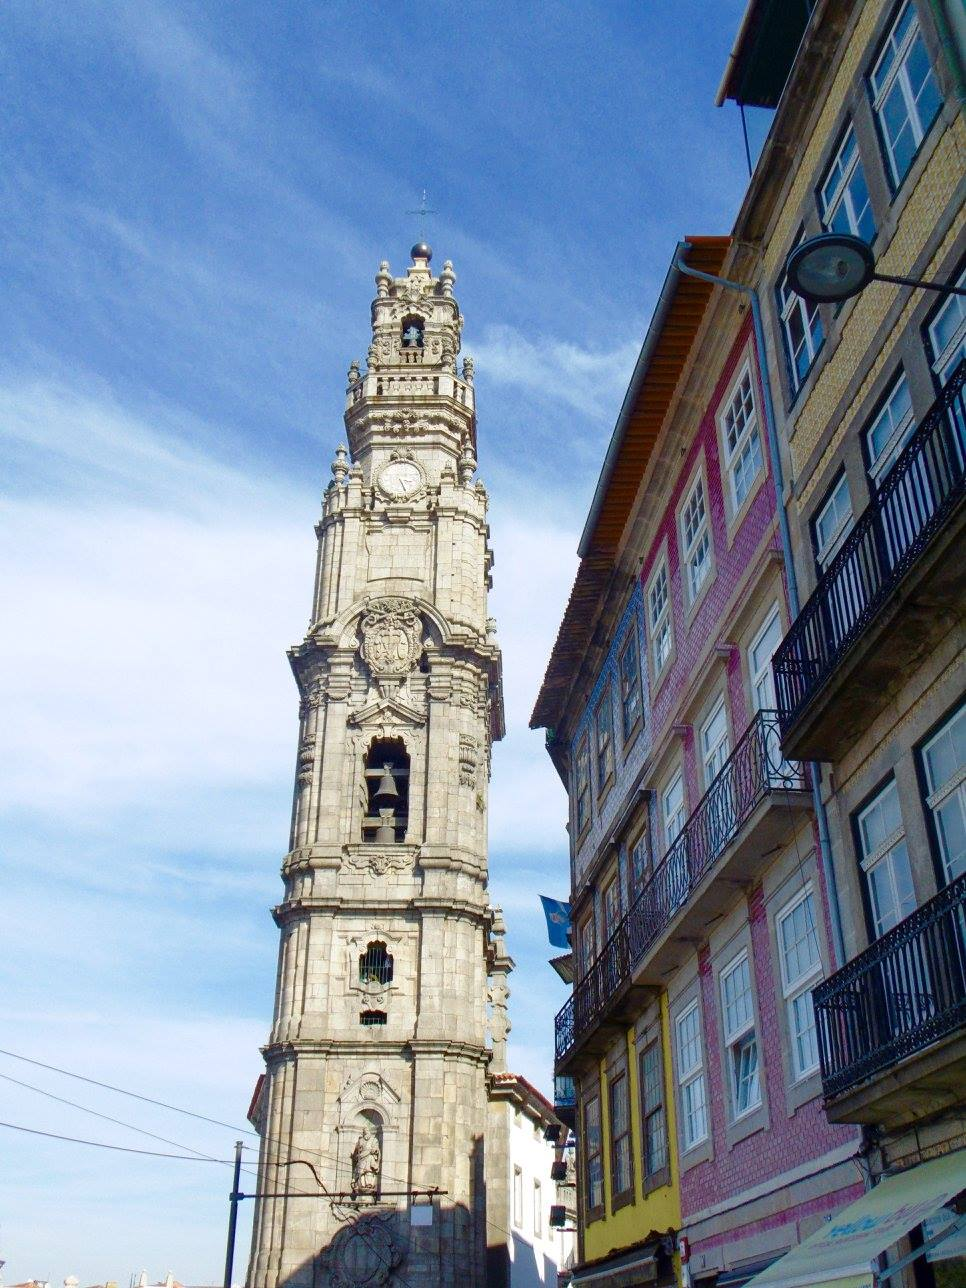 Clérigos Tower is a great spot for getting a good view over the city. It can be climbed anytime between 9am and 7pm